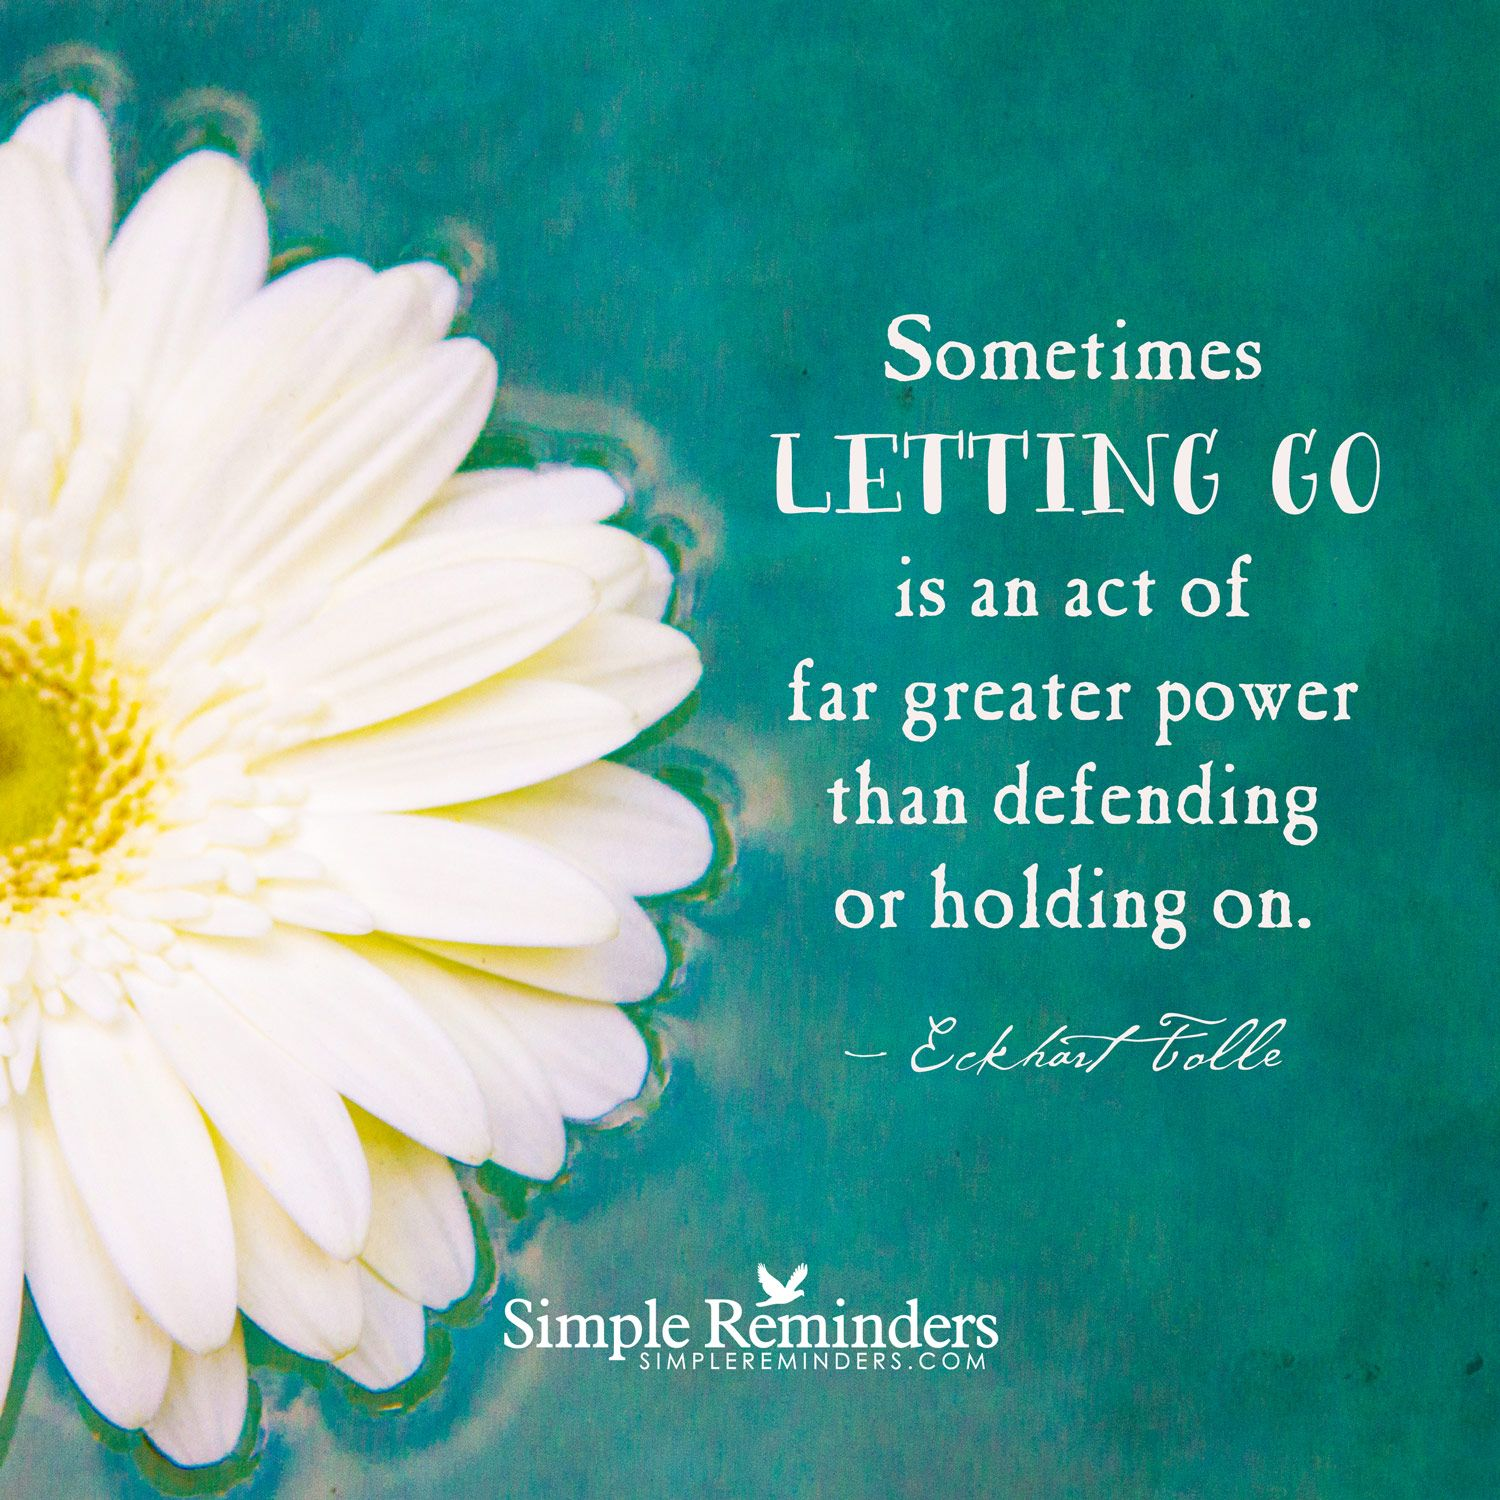 Letting go is powerful Sometimes letting go is an act of far greater power than defending or holding on. — Eckhart Tolle and article by Dr. Charles Glassman, MD., Medical Doctor, Internationally Acclaimed Health Expert and Coach. Letting Go of the Past. Holding on to negative feelings and past circumstances is like placing a lock on your soul. — Charles Glassman This quote...